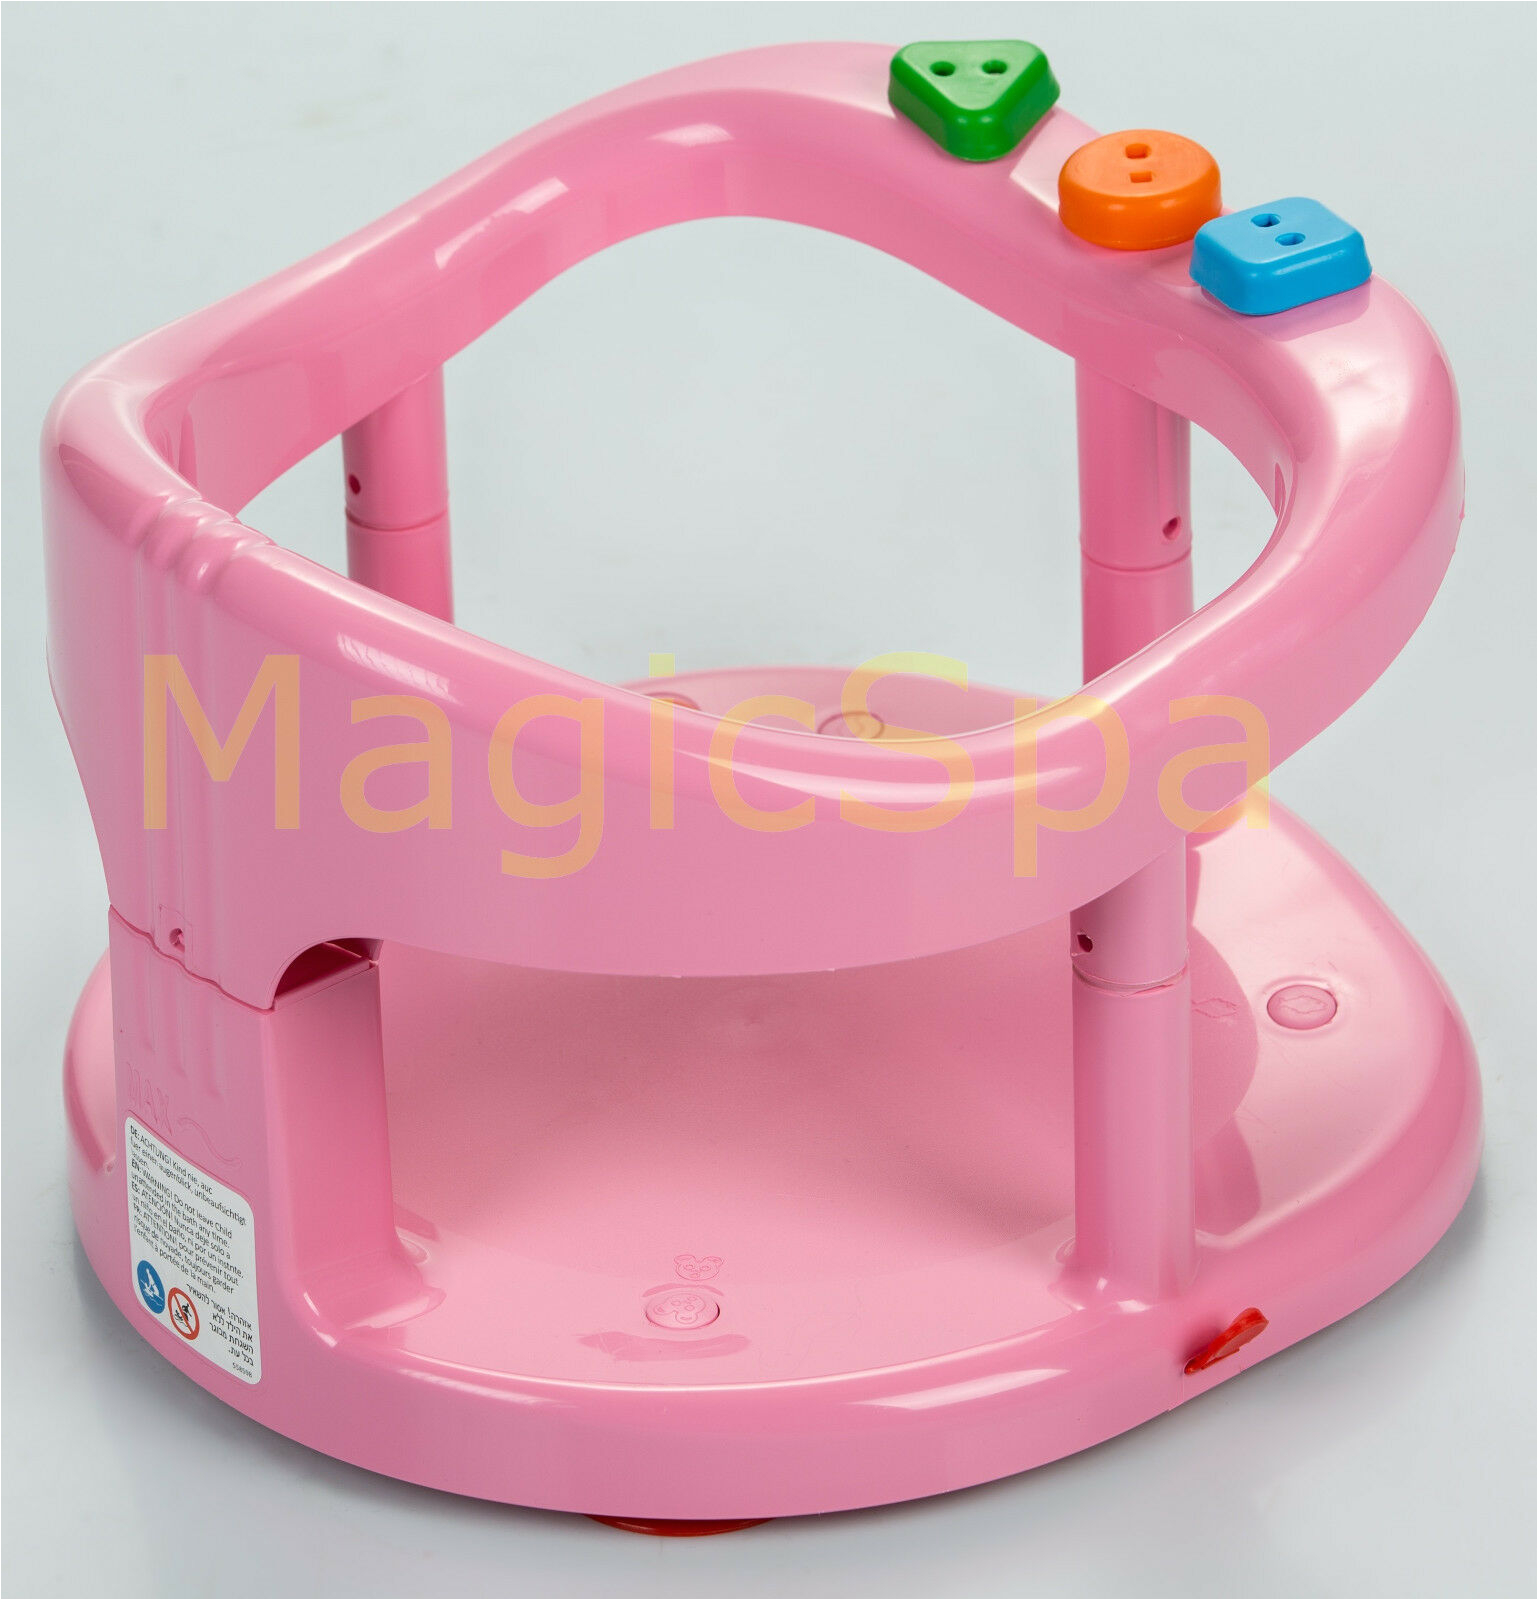 Baby Bath Tub Seats Rings Infant Baby Bath Tub Ring Seat Keter Pink Fast Shipping